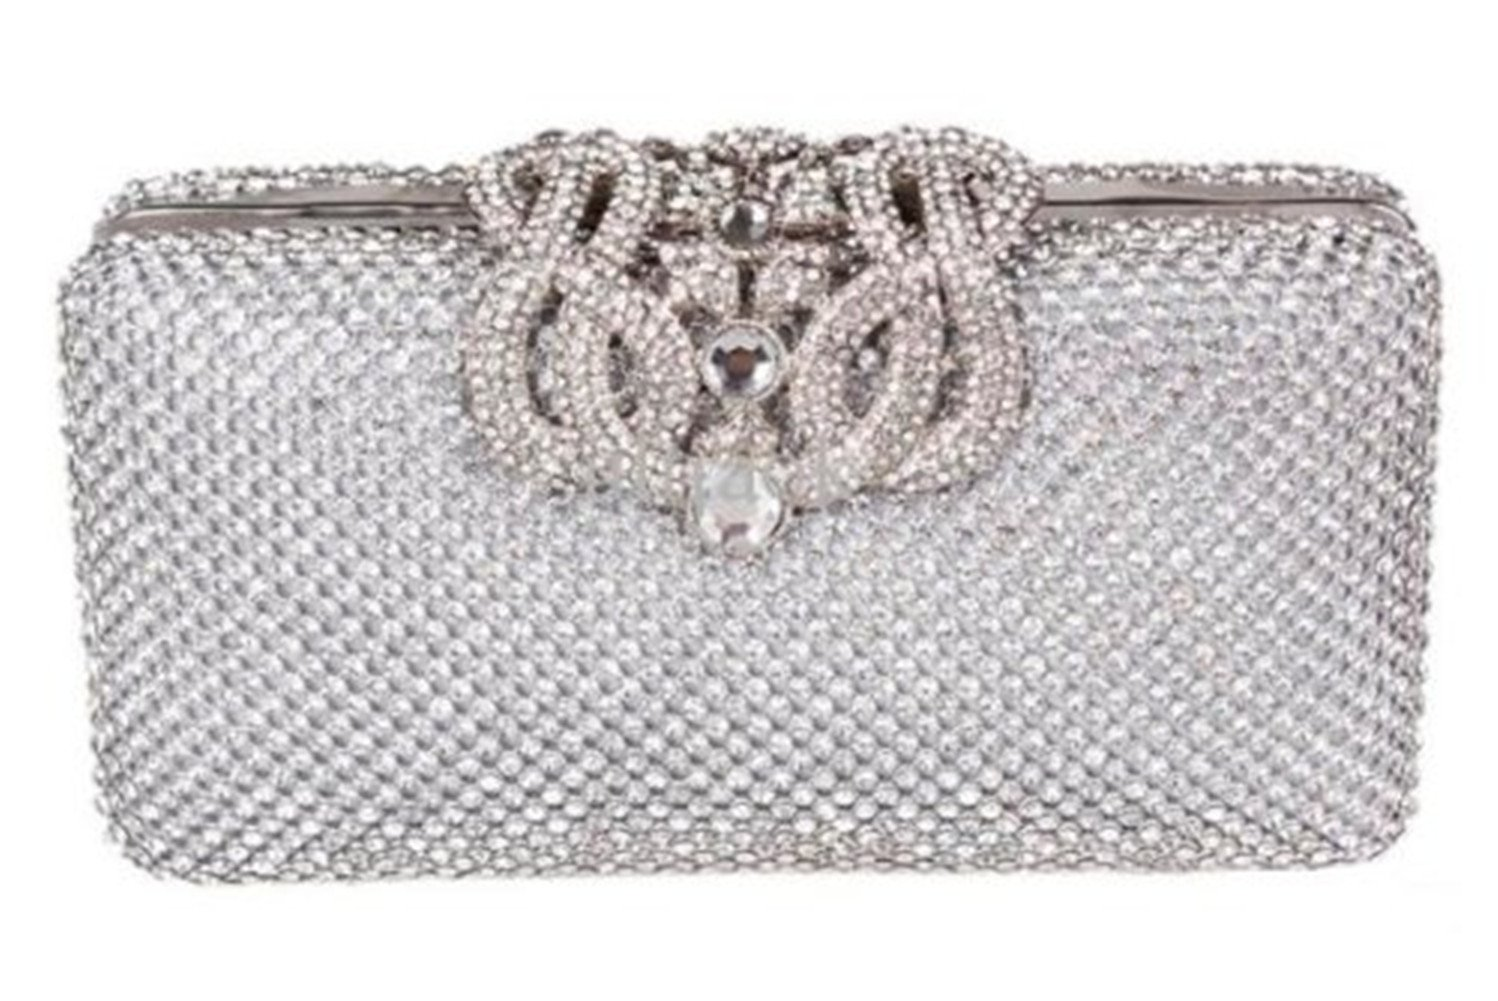 8614a26dd1 High Quality Dazzling Silver Diamante Encrusted Evening bag Clutch Purse  Party Bridal Prom: Amazon.co.uk: Luggage